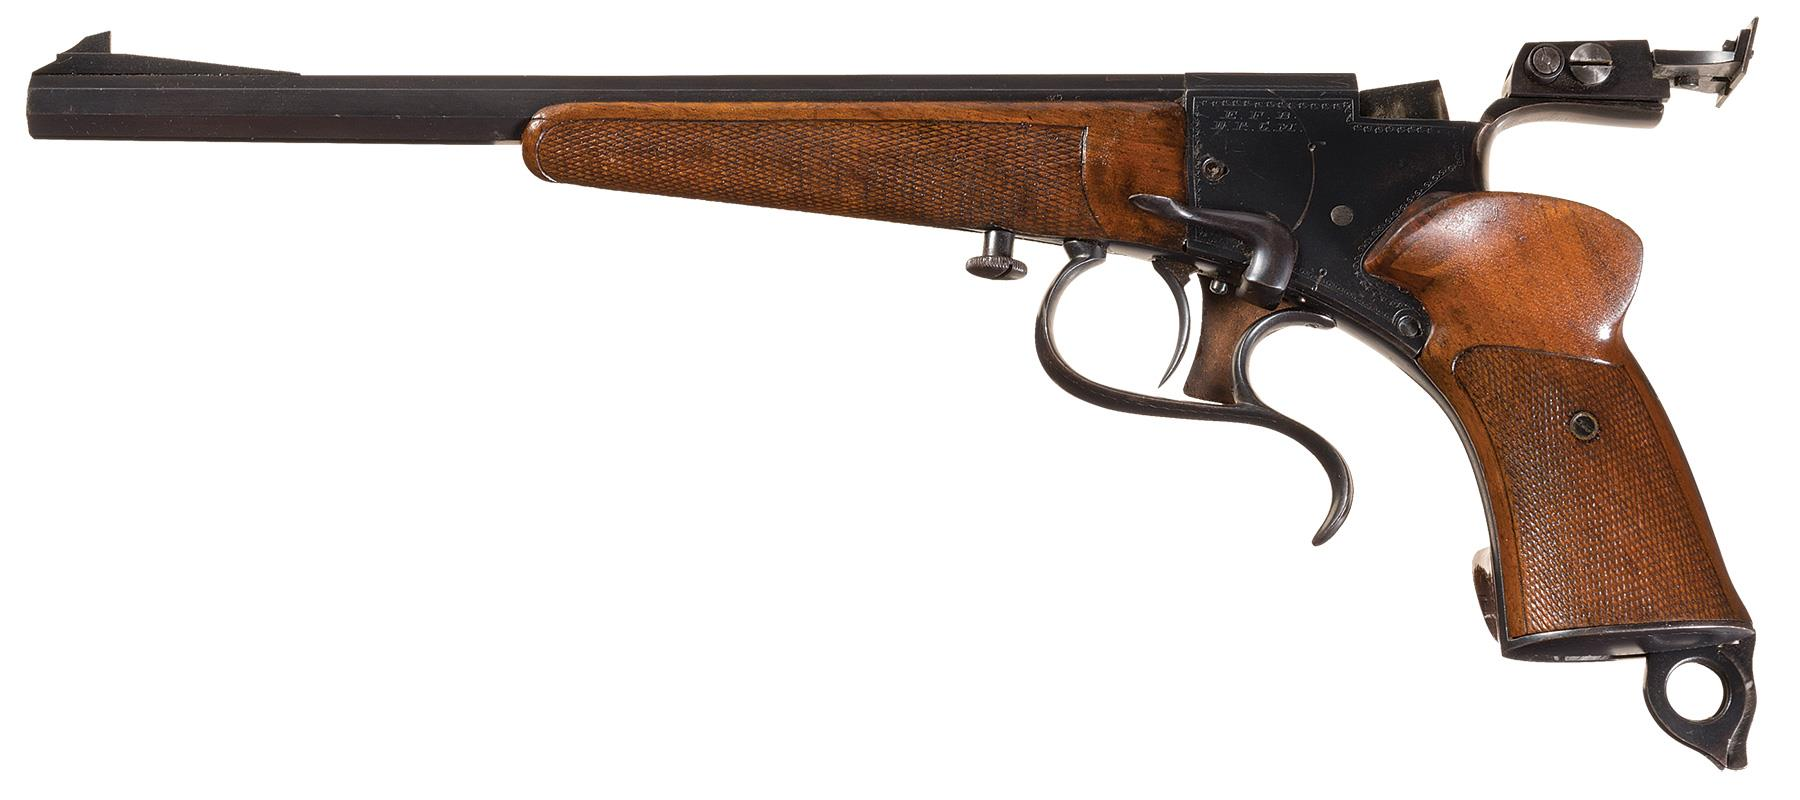 "This Buchel Luna antique free pistol is typical of how free pistols developed. The action is falling block, the lever on the right side of the action ""sets"" the trigger, and the action is opened by the lever under the grip."